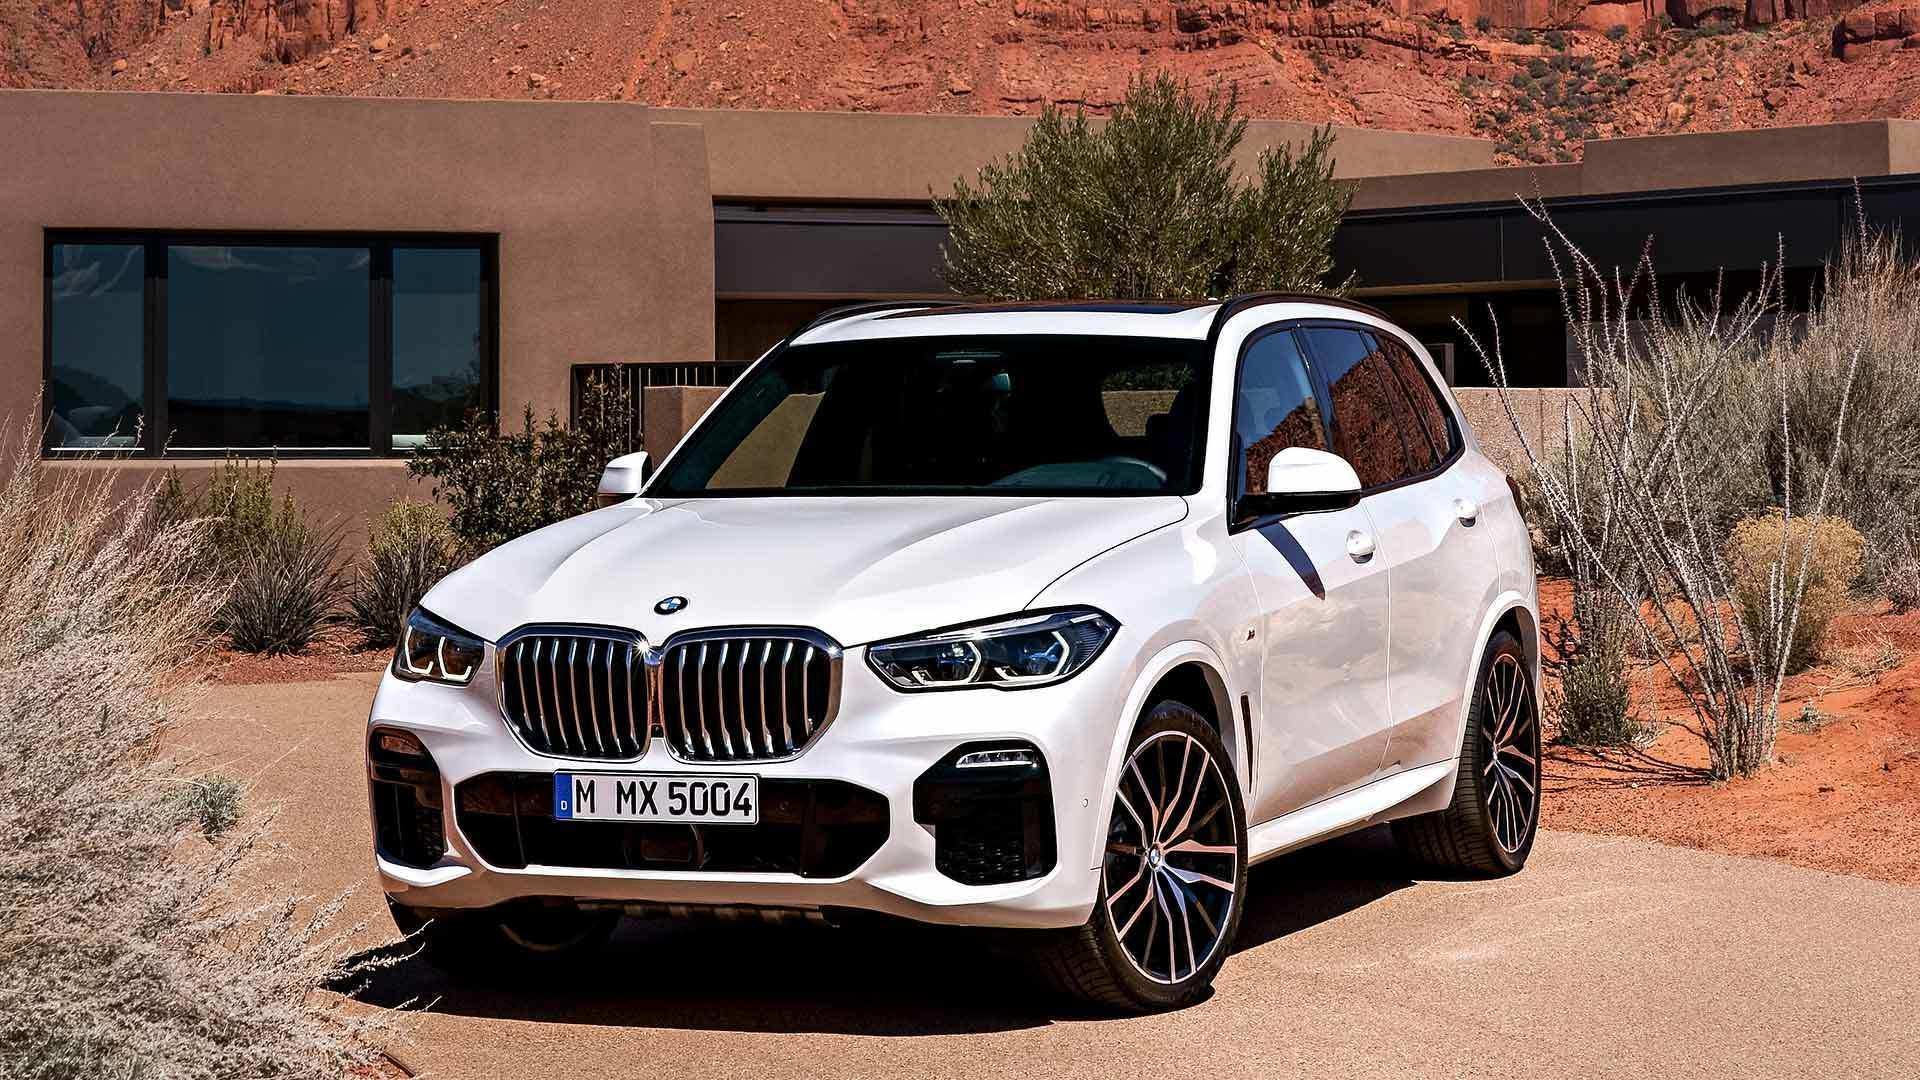 94 Concept of Bmw X5 2019 Price Usa First Drive Price Performance And Review Ratings with Bmw X5 2019 Price Usa First Drive Price Performance And Review